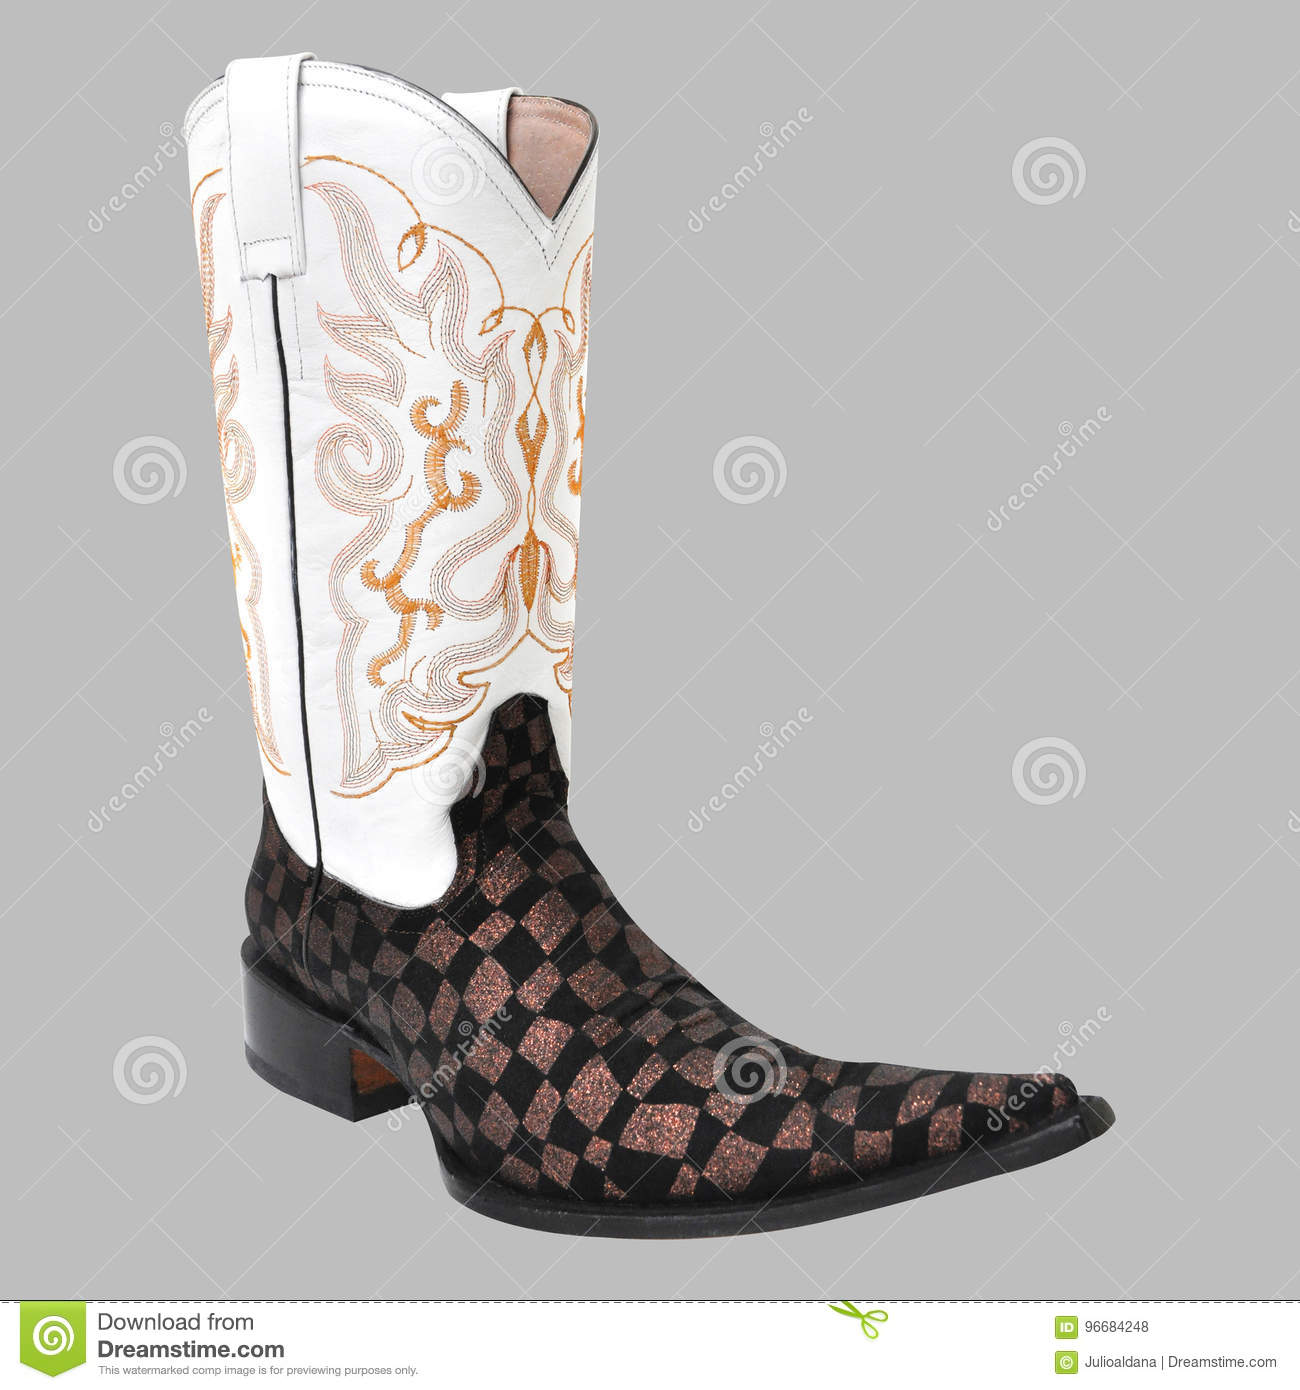 07a585896ba Pointy mexican cowboy boot stock photo. Image of cowgirl - 96684248